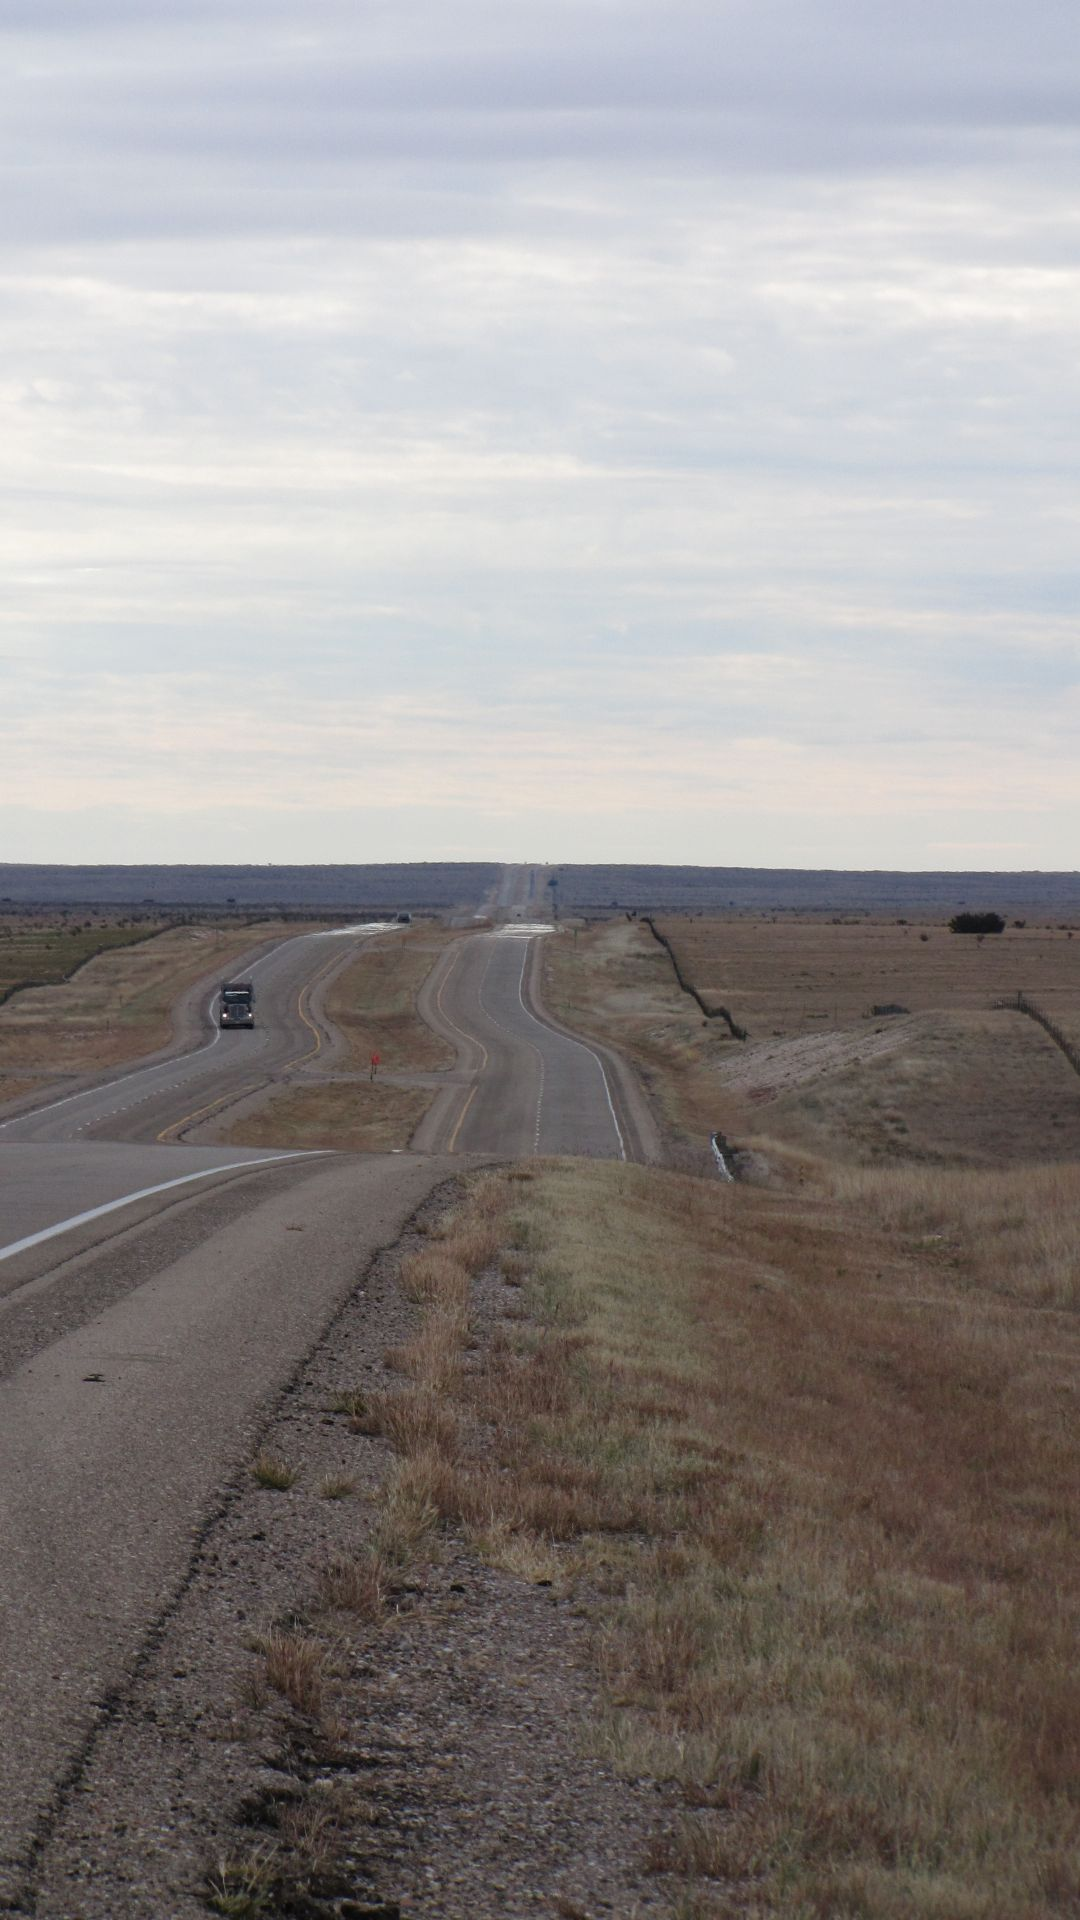 Nr Clines Corner, NM, USA - endless empty rolling hills with vast distances between towns through southern New Mexico